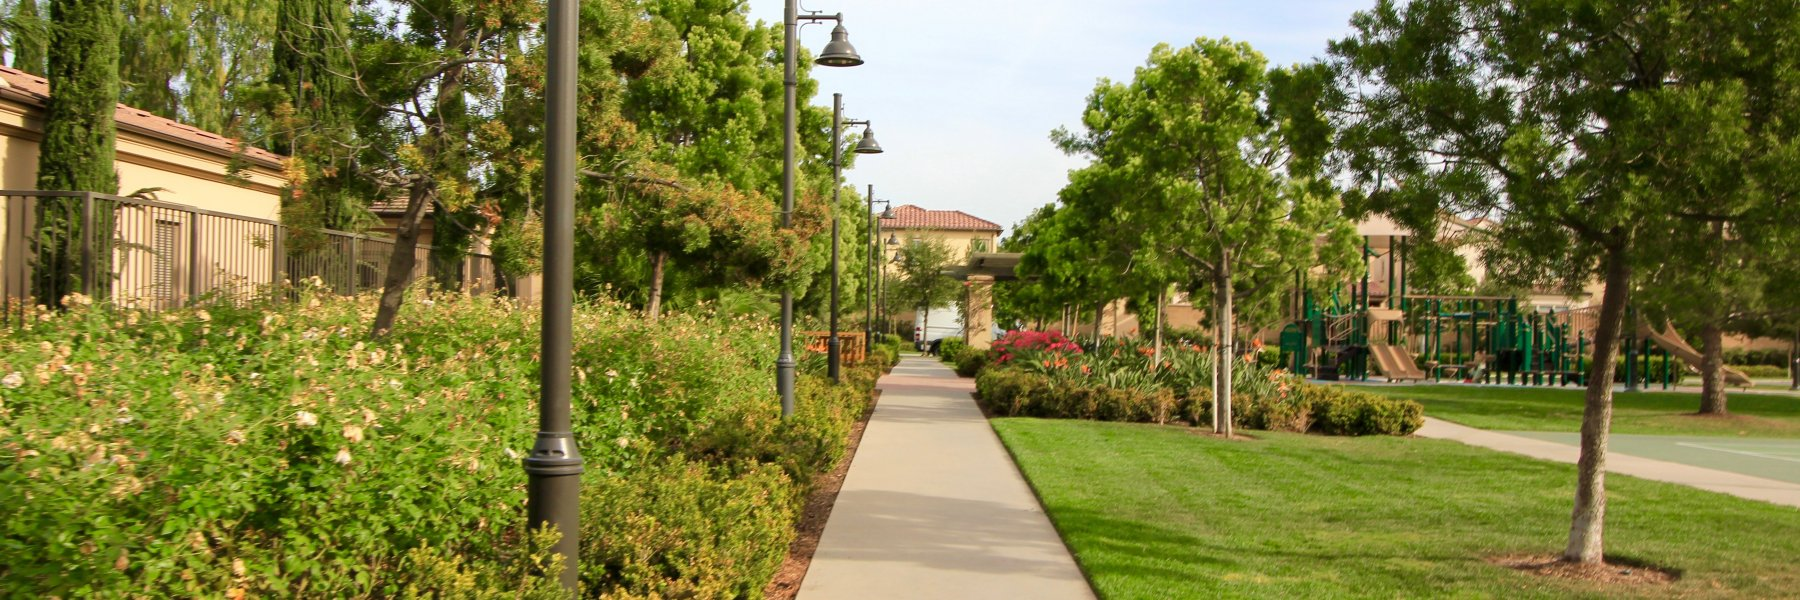 Stonegate is a community of homes in Irvine California